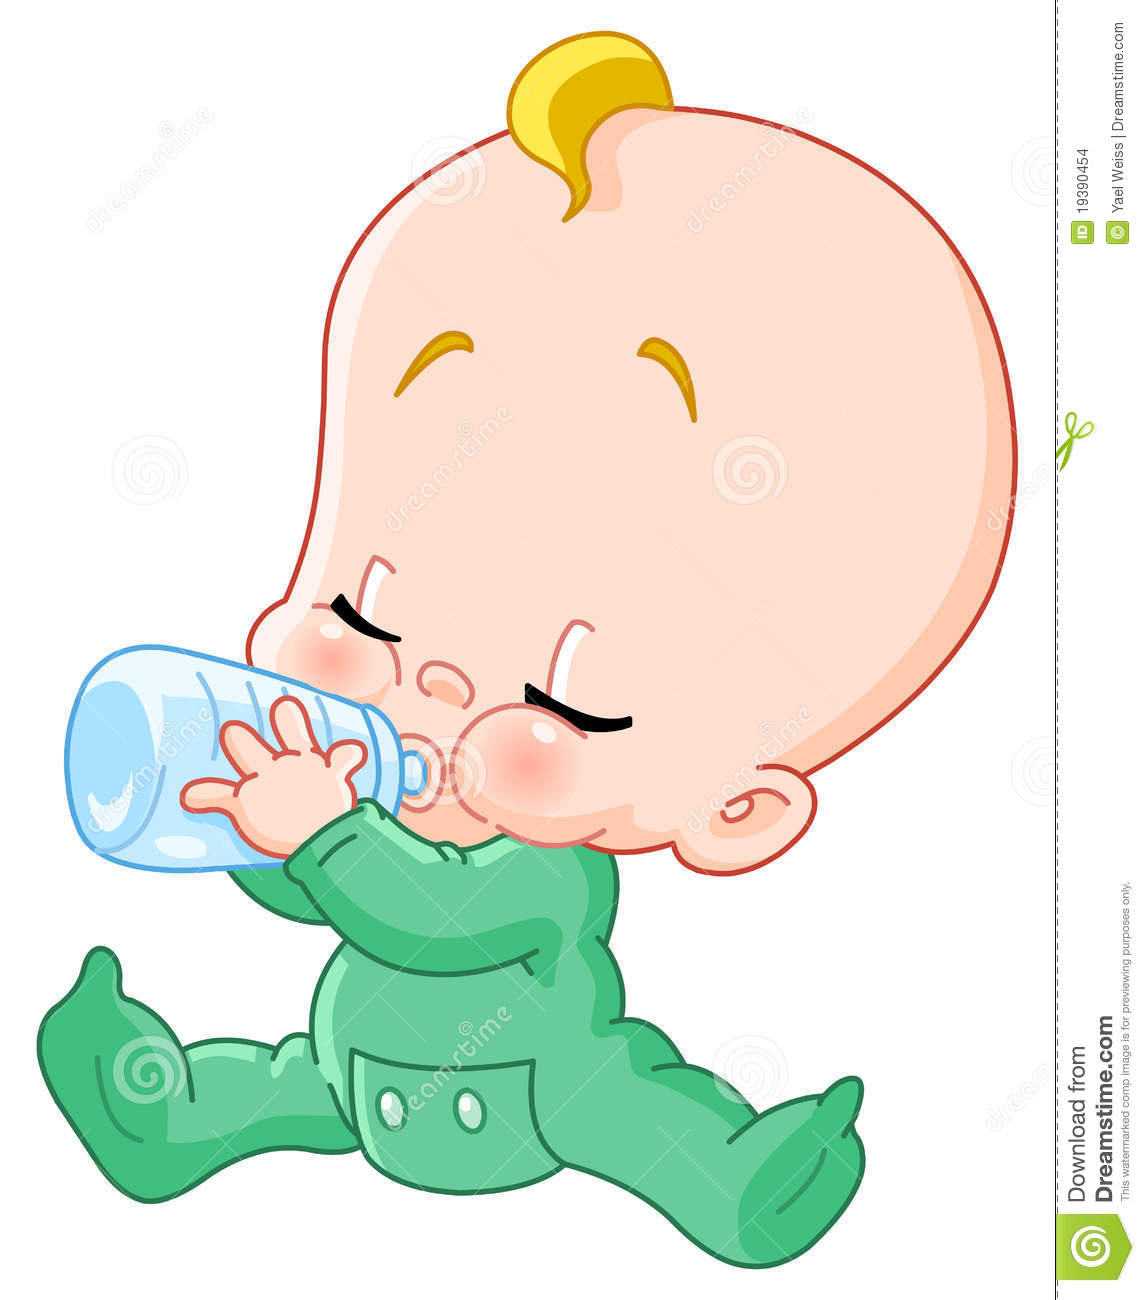 More similar stock images of ` Baby with bottle `